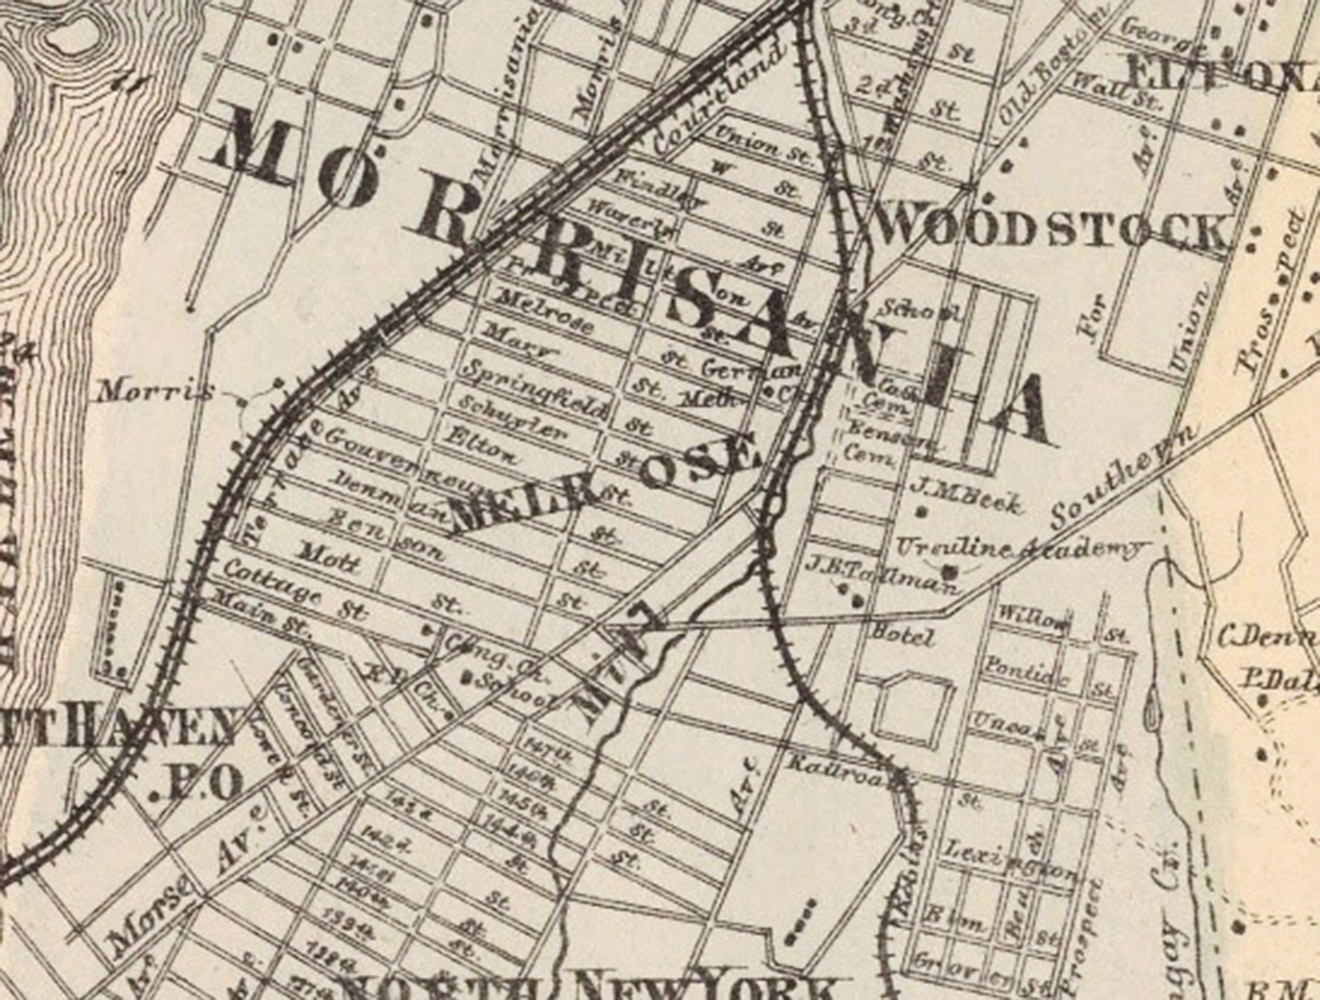 Plan view of Westchester